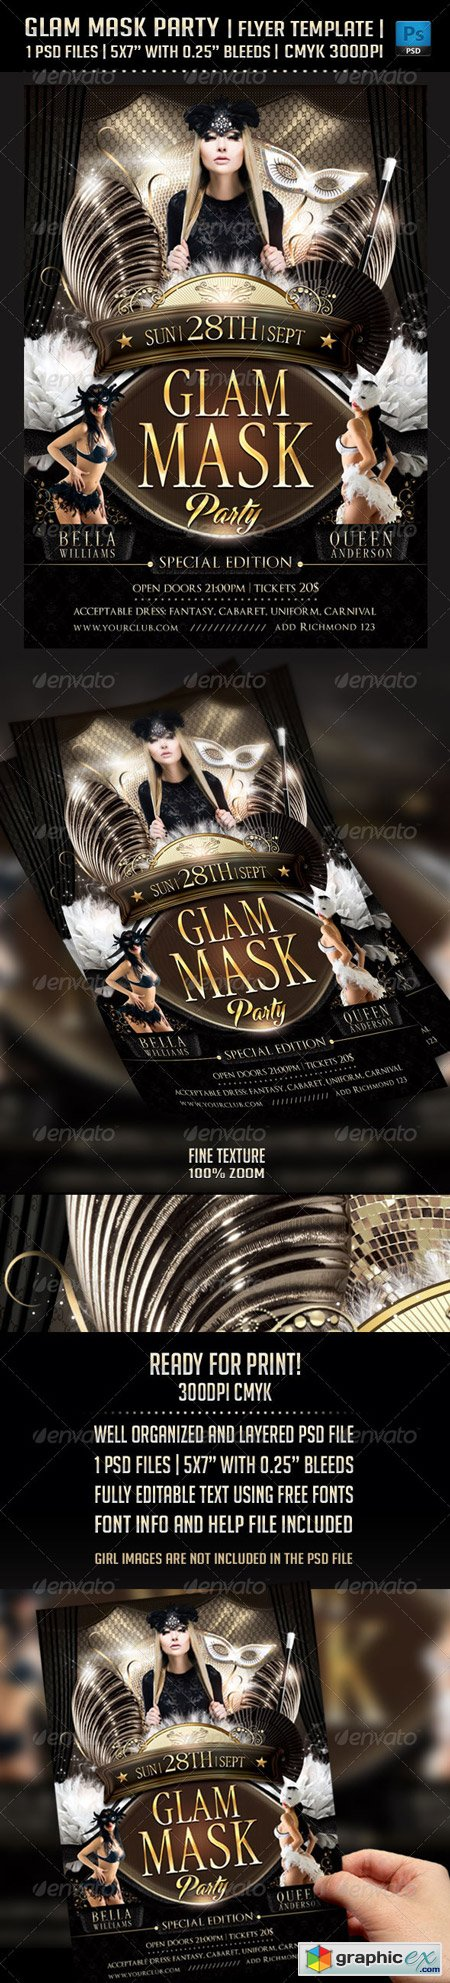 Glam Mask Party Flyer Template